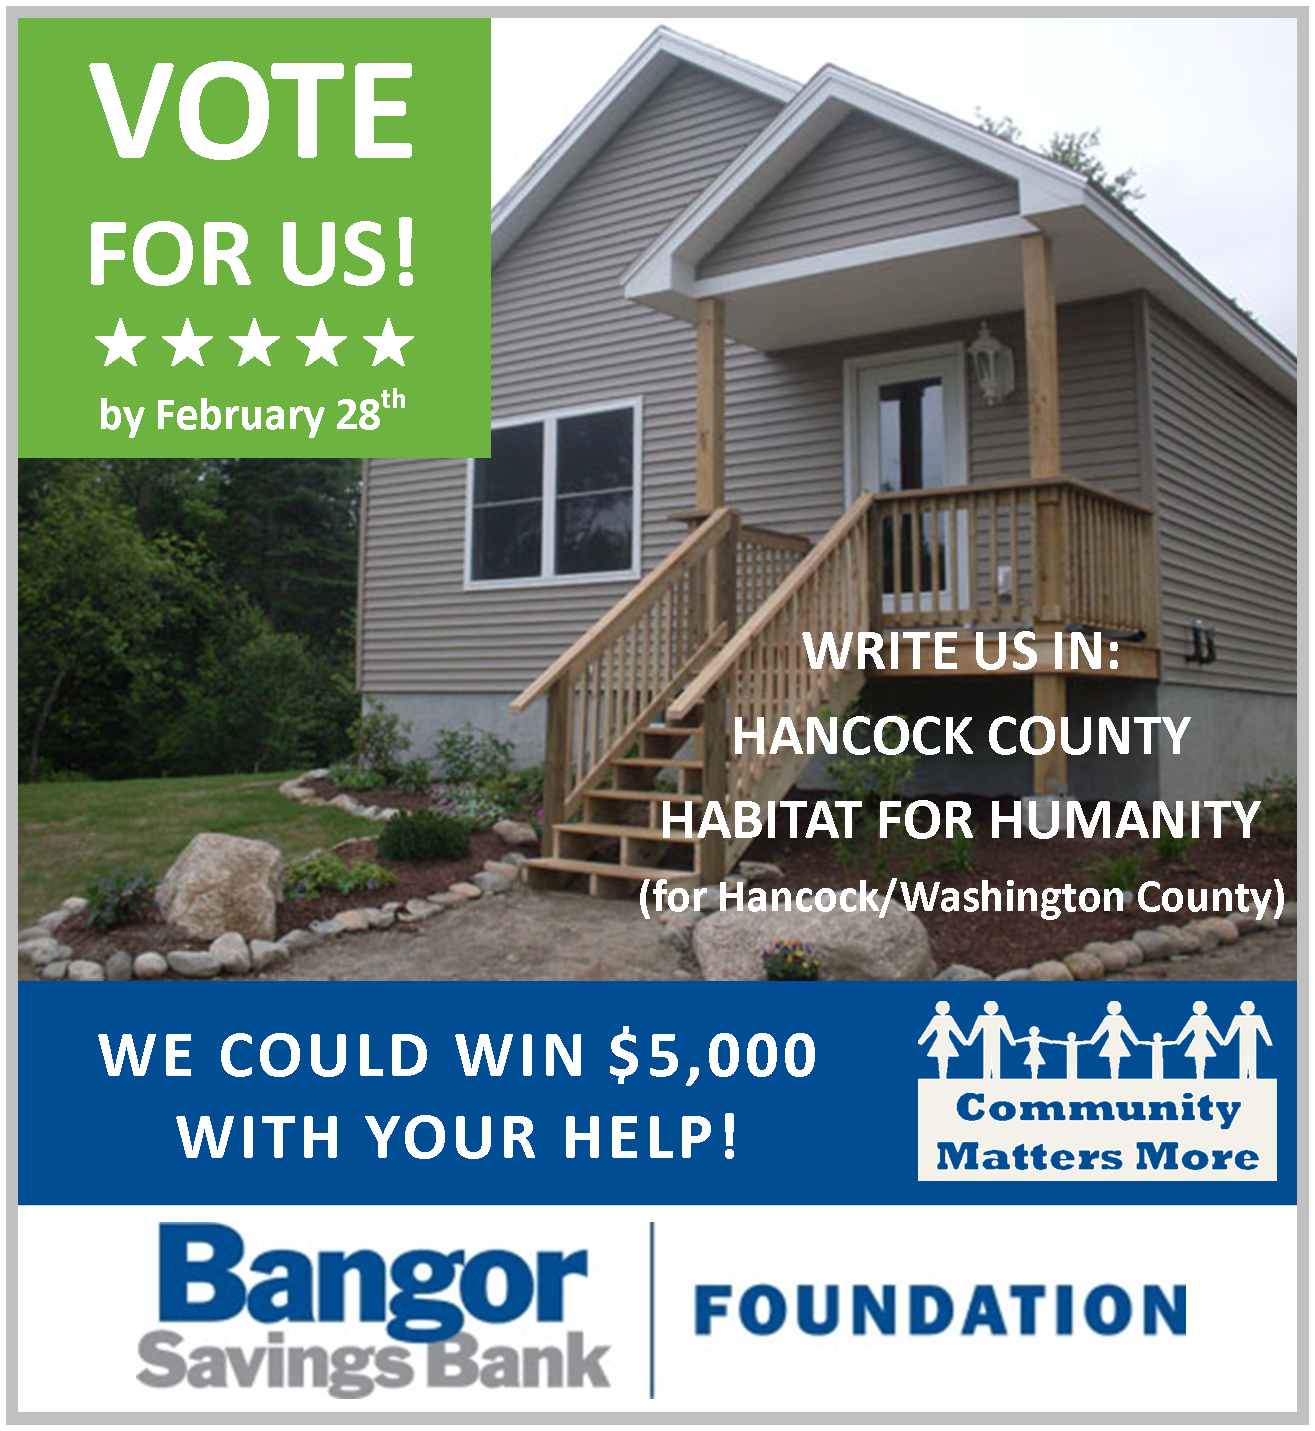 Community Matters More 2017 Voting Image Home